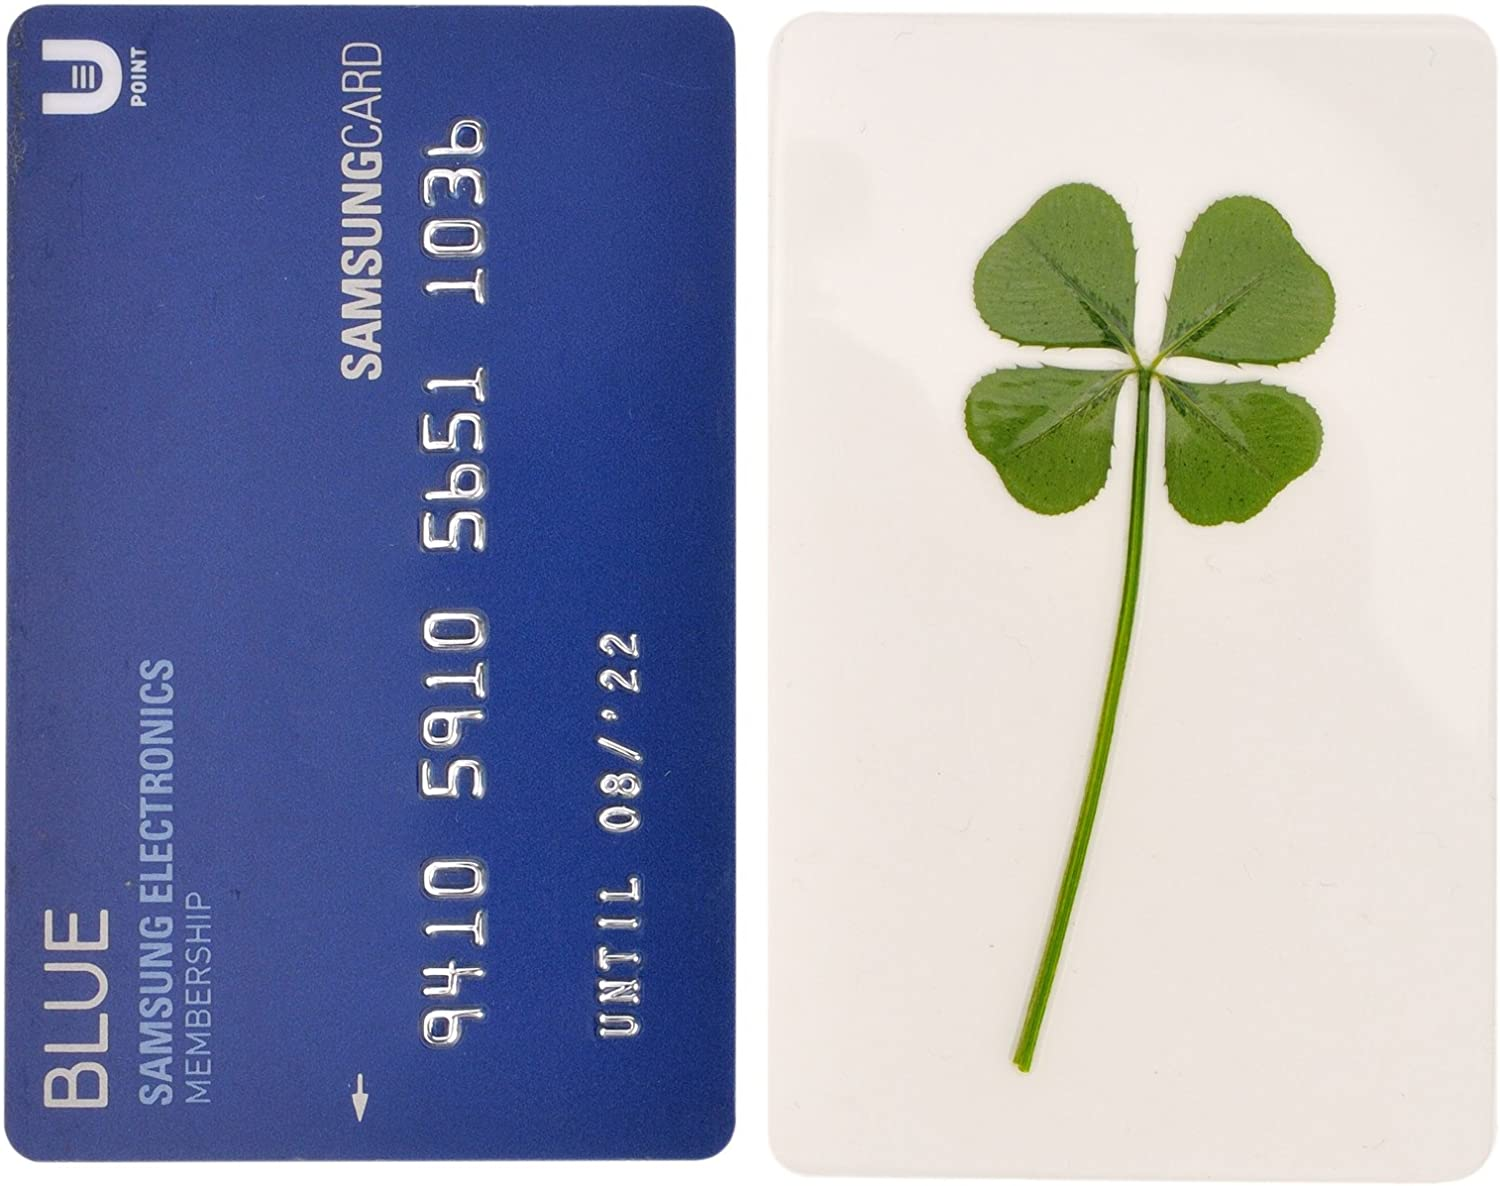 Saint Patrics Day Bookmarks Irish Shamrock Good Luck Charm for Smartphone Wallet Case Amulet Purse Coating Gift Thanks Card M Vintage Repertory Genuine Real 4 Four-Leaf Green Clover St